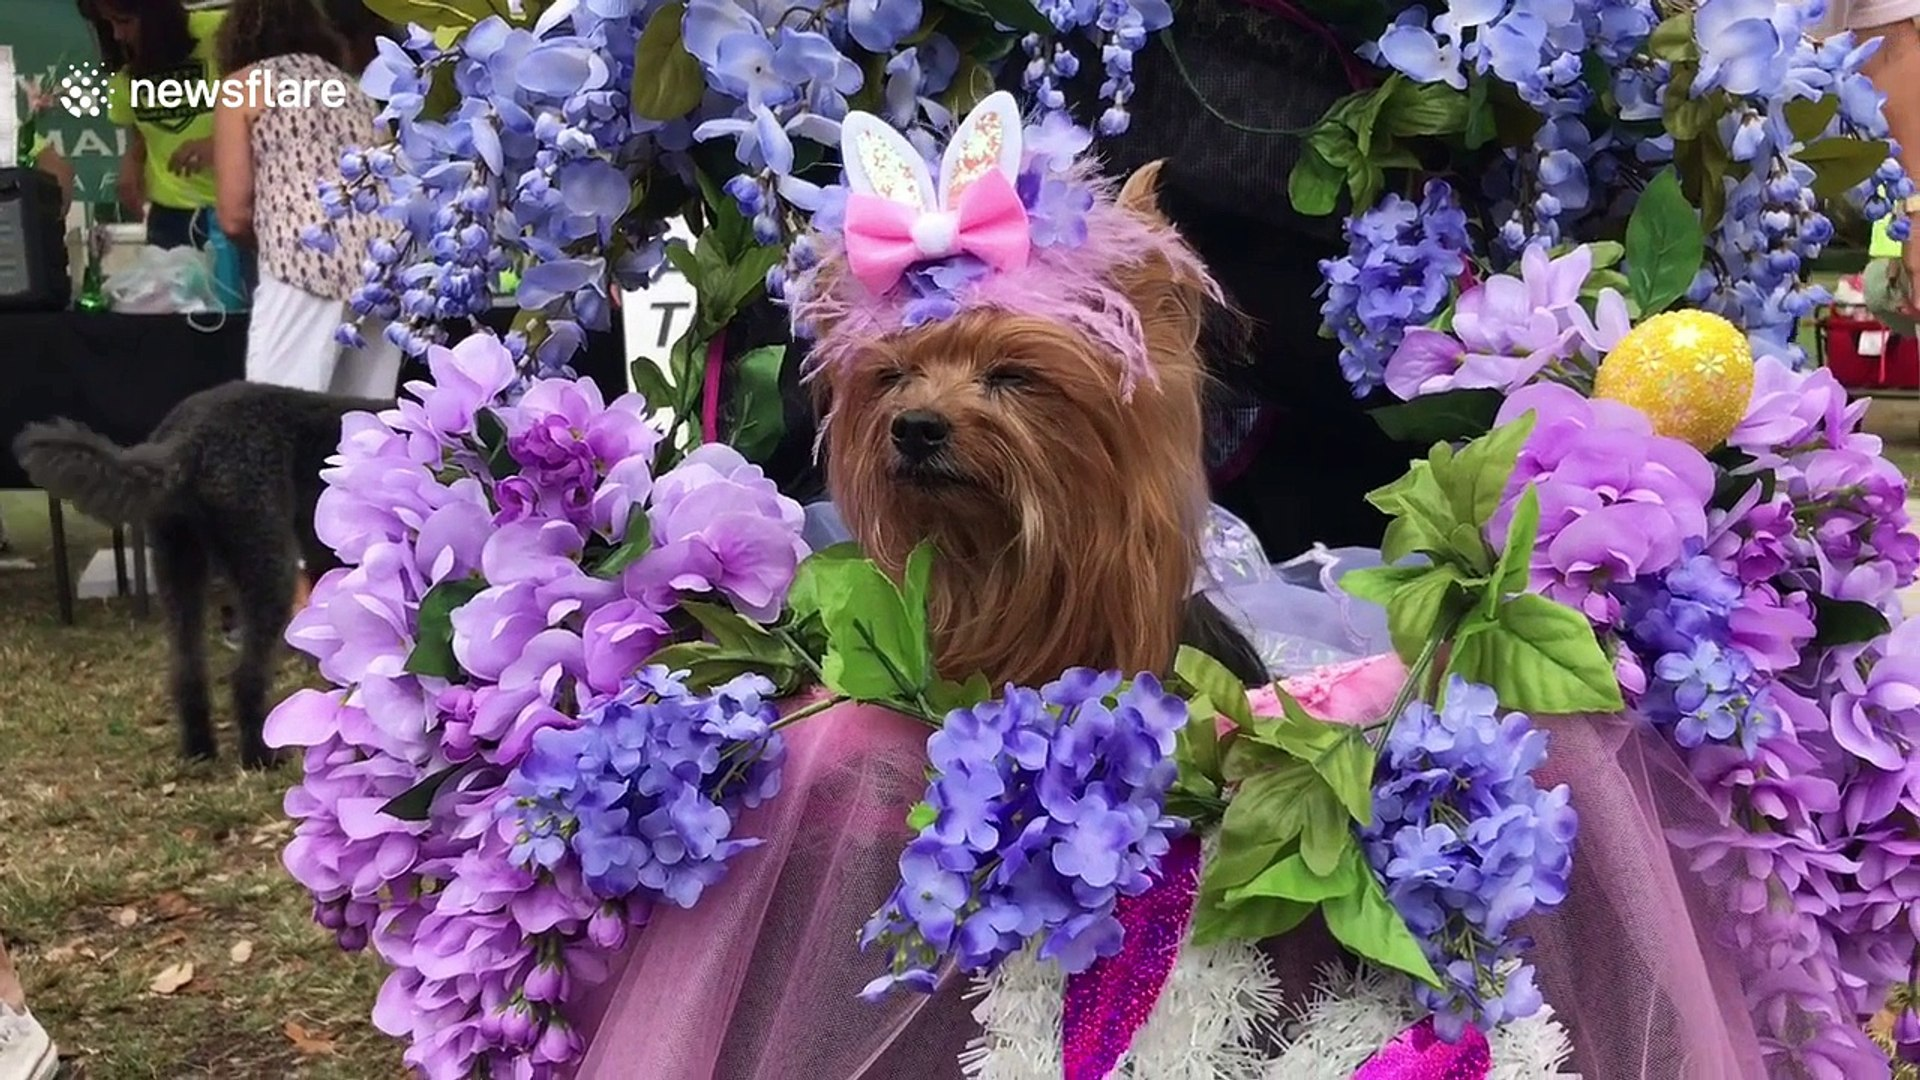 Dozens of pets take part in Easter Bonnet Pet Parade in Florida